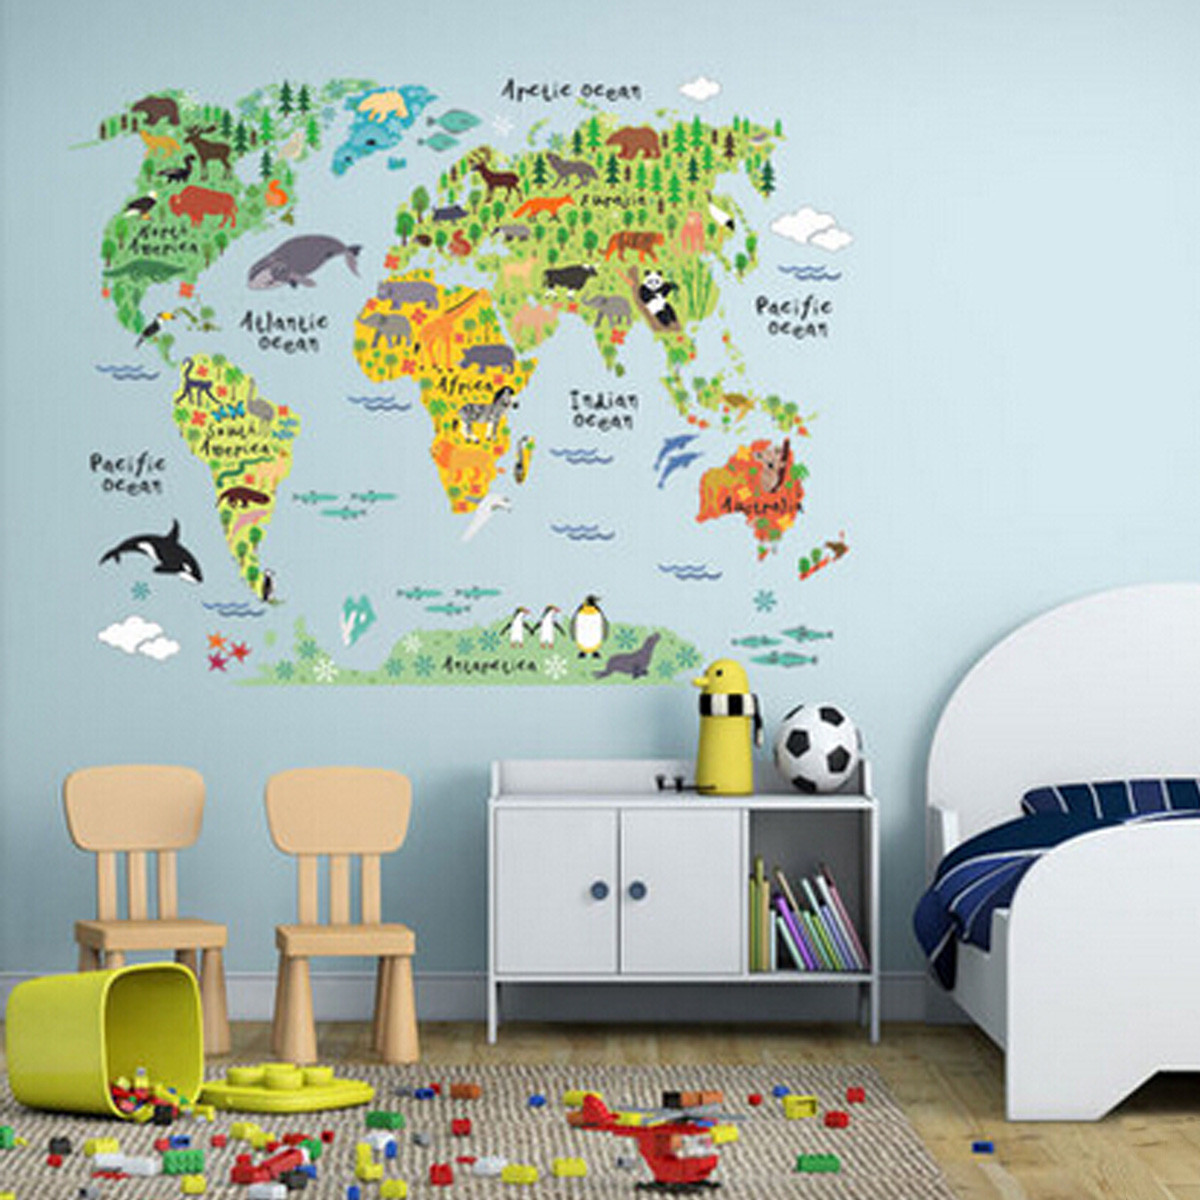 1.97x2.95ft Colorful World Map Kids Room Office Wall Sticker Wallpaper Decals  Nursery Home Decor   Walmart.com